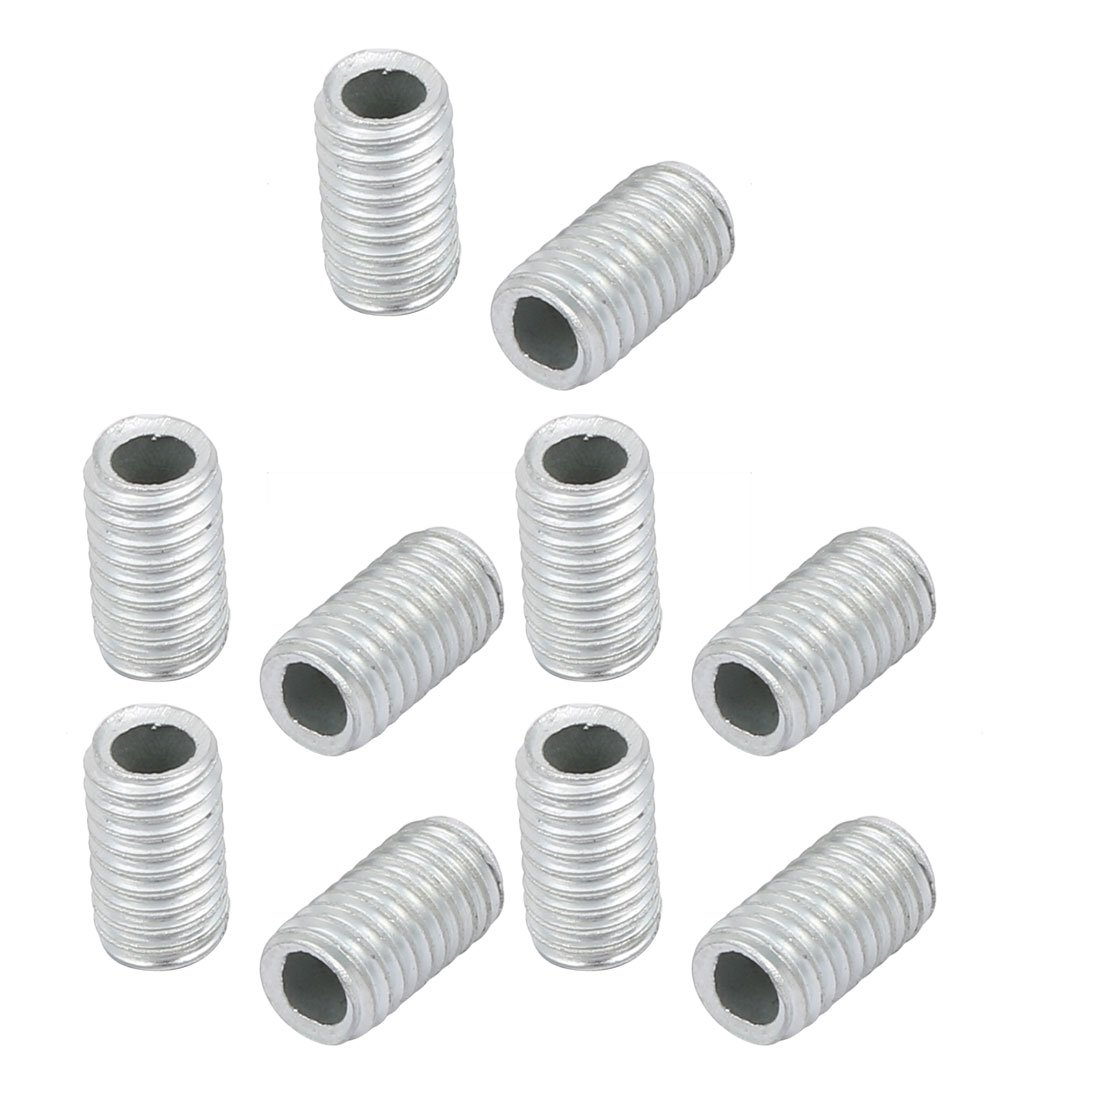 uxcell 10Pcs M6 Full Threaded Lamp Nipple Straight Pass-Through Pipe Connector 10mm Length